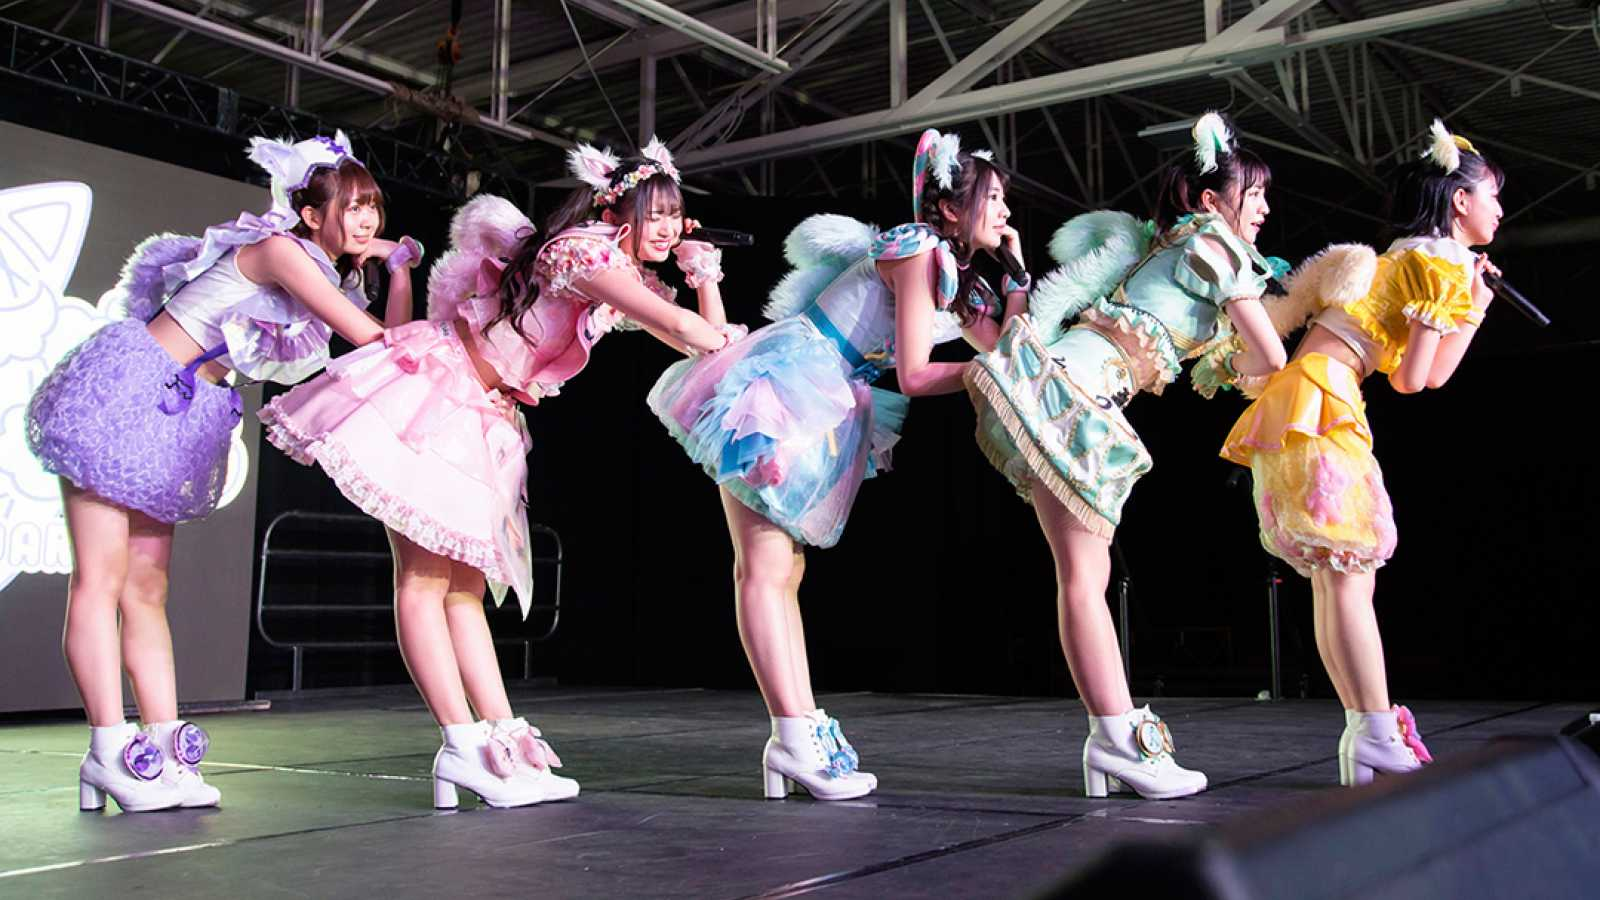 Wasuta Wins Hearts in Canada - Idol Group Continues Overseas...